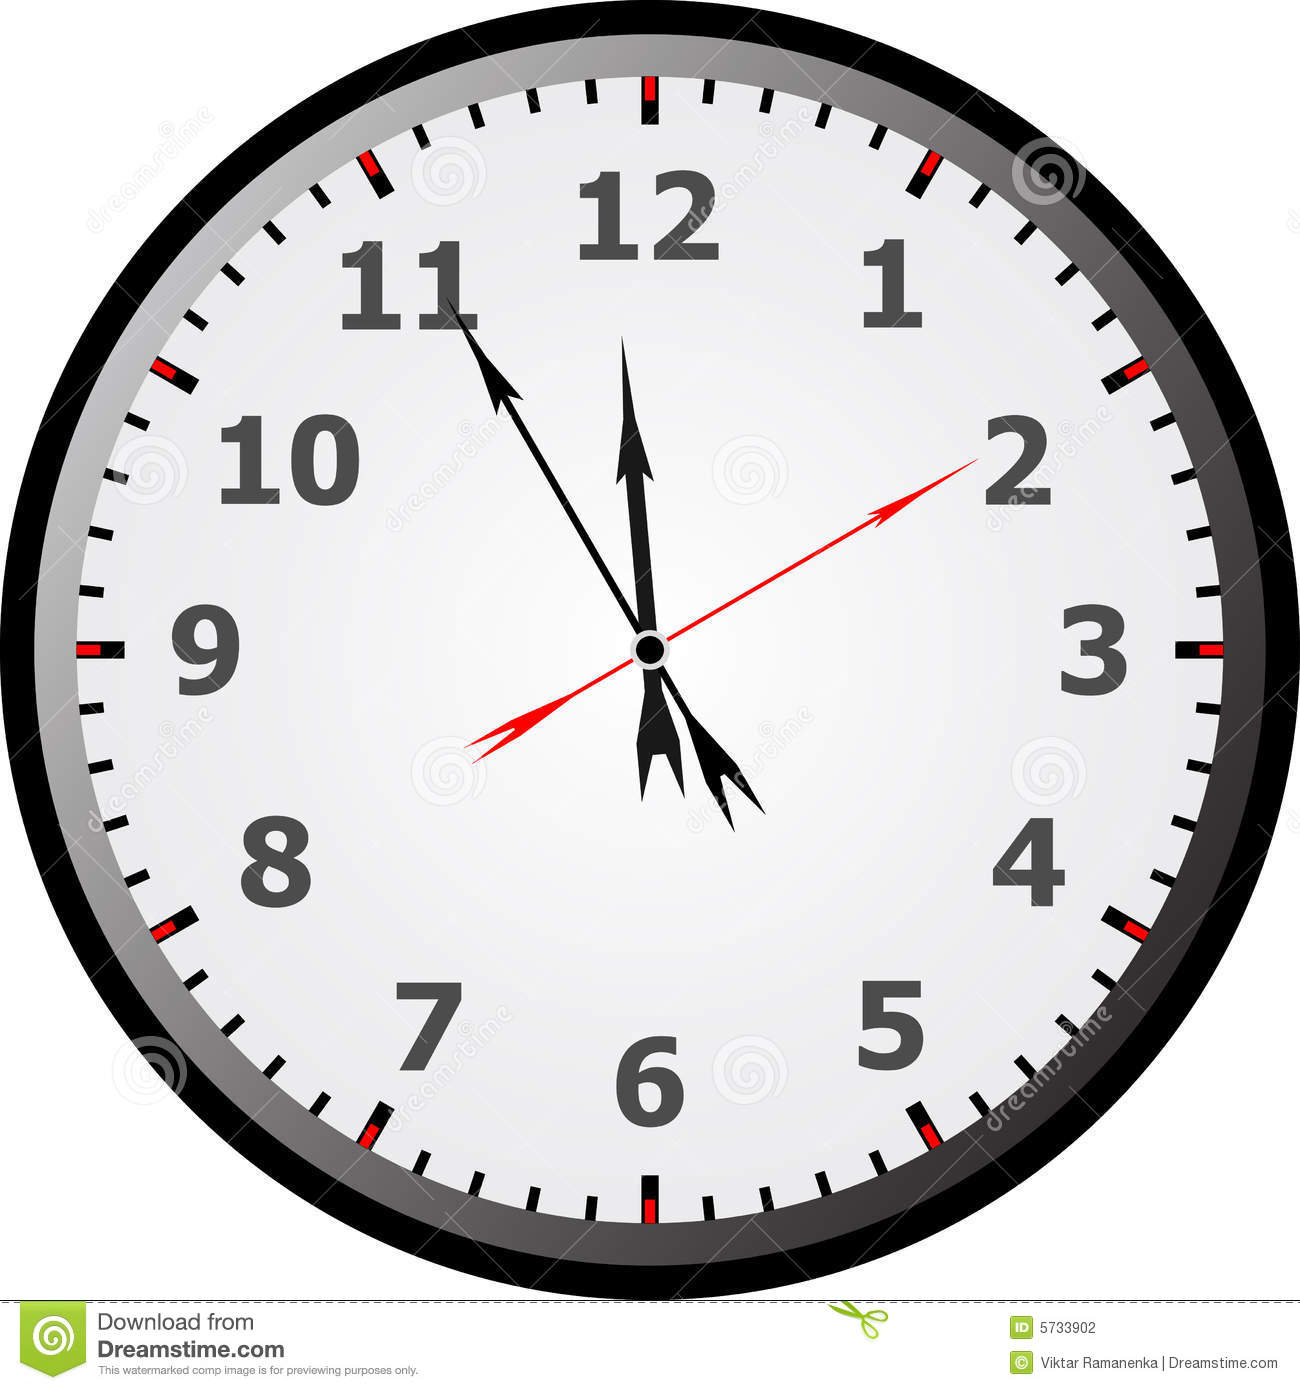 clock face stock vector. illustration of time, alarm, number - 5733902